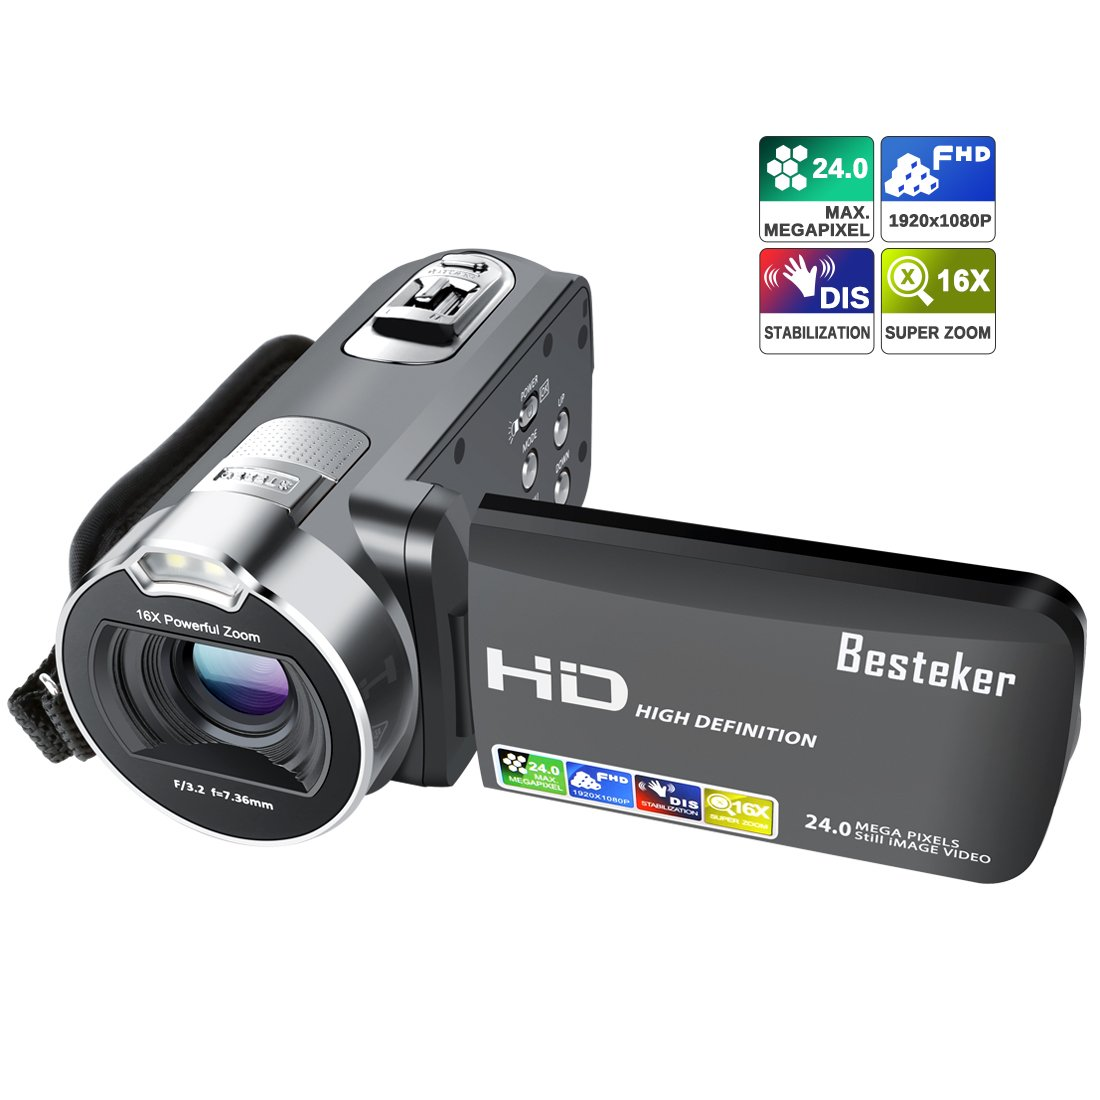 Camera Camcorder, Besteker 1080P Recorder 24M 16X HD Digital Zoom Video Camcorder 2.7 Inch LCD and 270 Degree Rotation Screen